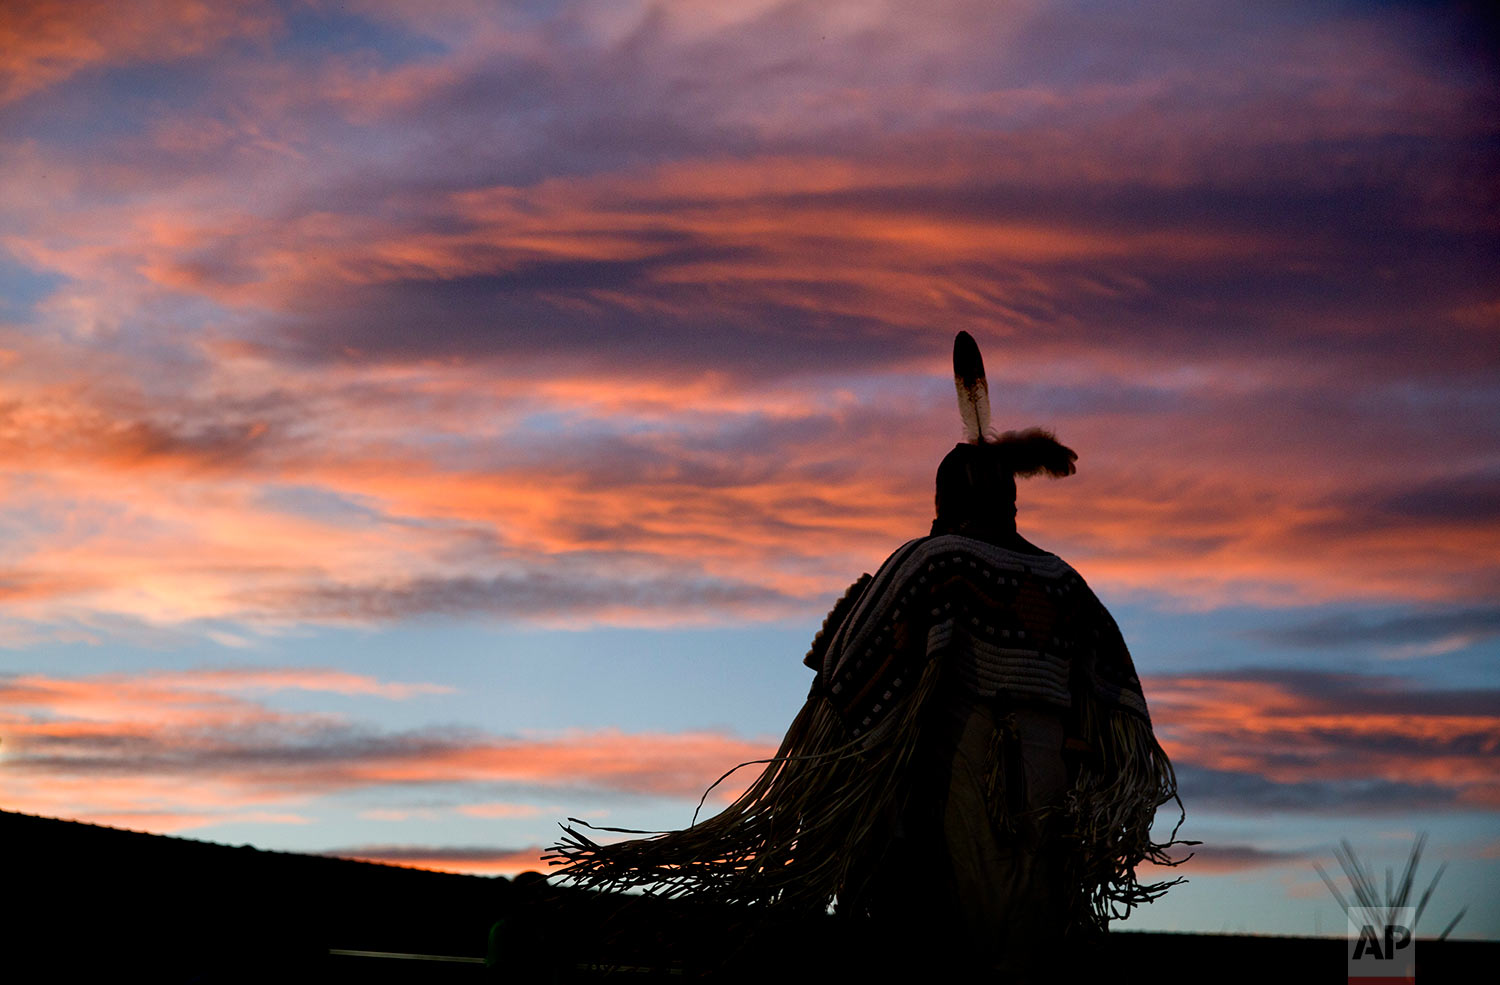 A woman performs a traditional Native American dance during the North American Indian Days celebration on the Blackfeet Indian Reservation in Browning, Mont., Friday, July 13, 2018.(AP Photo/David Goldman)